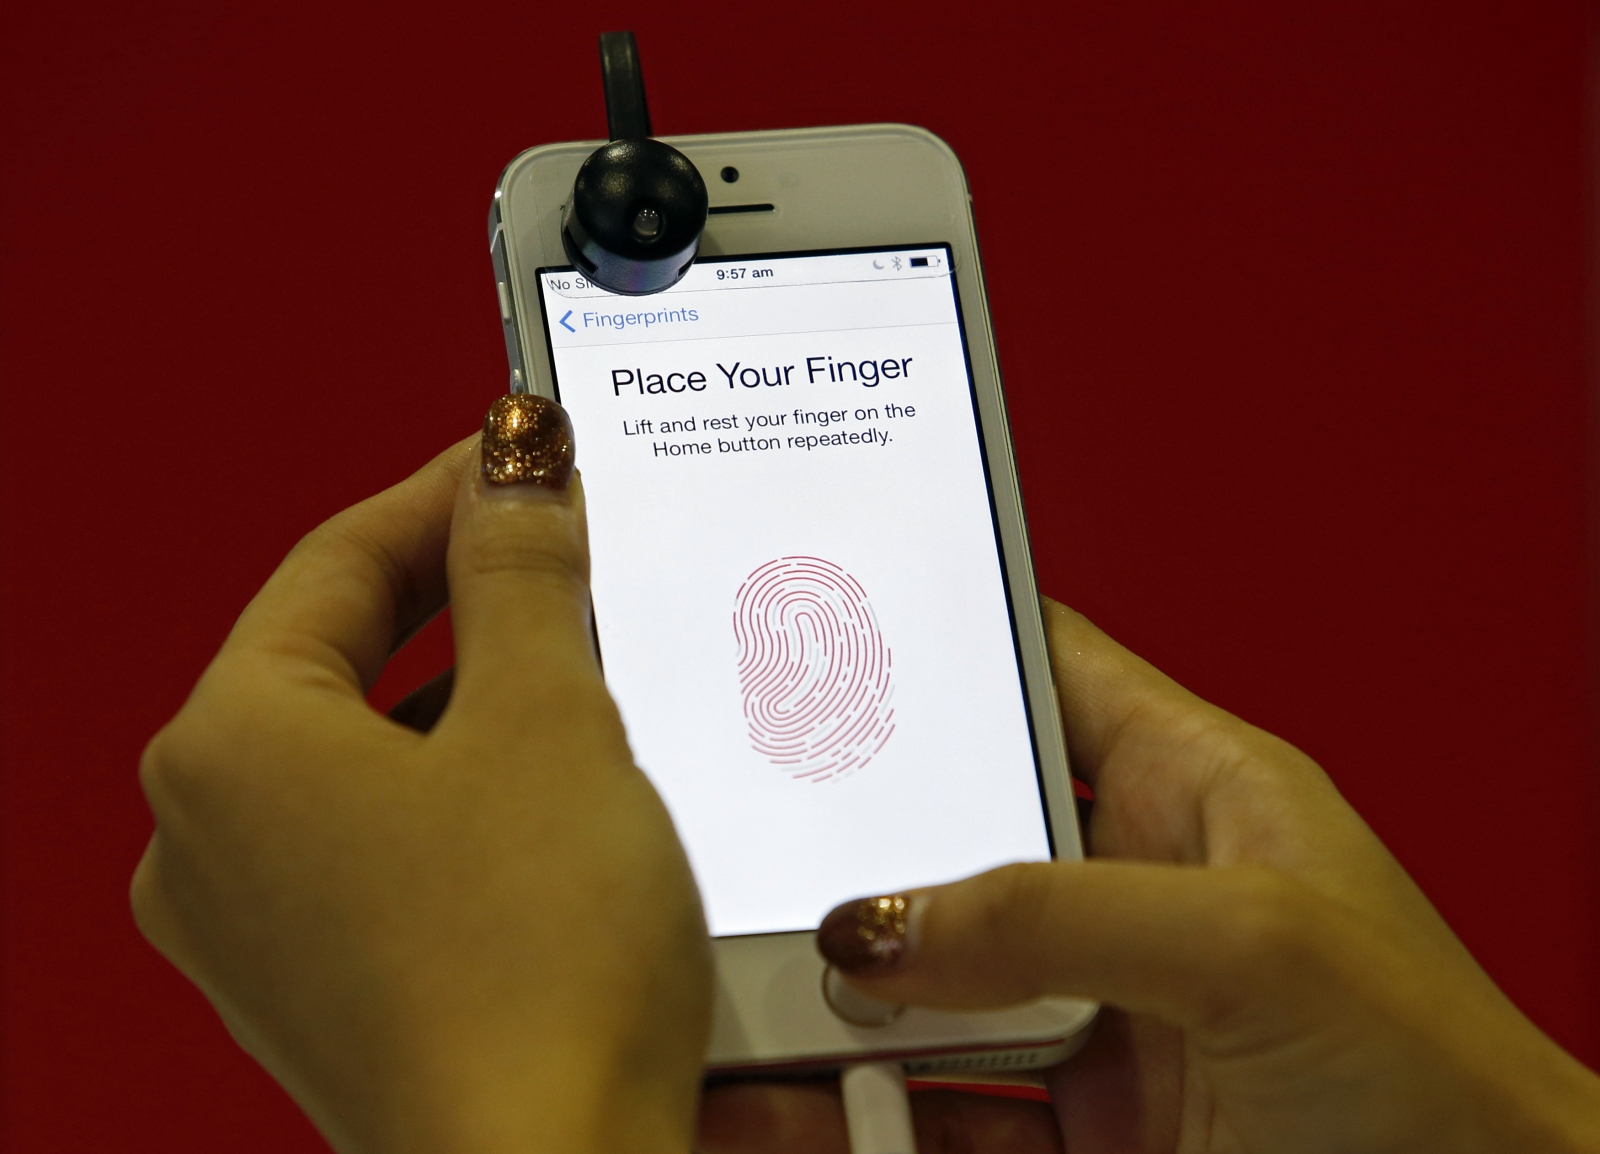 Apple could delay iPhone 8 for fingerprint